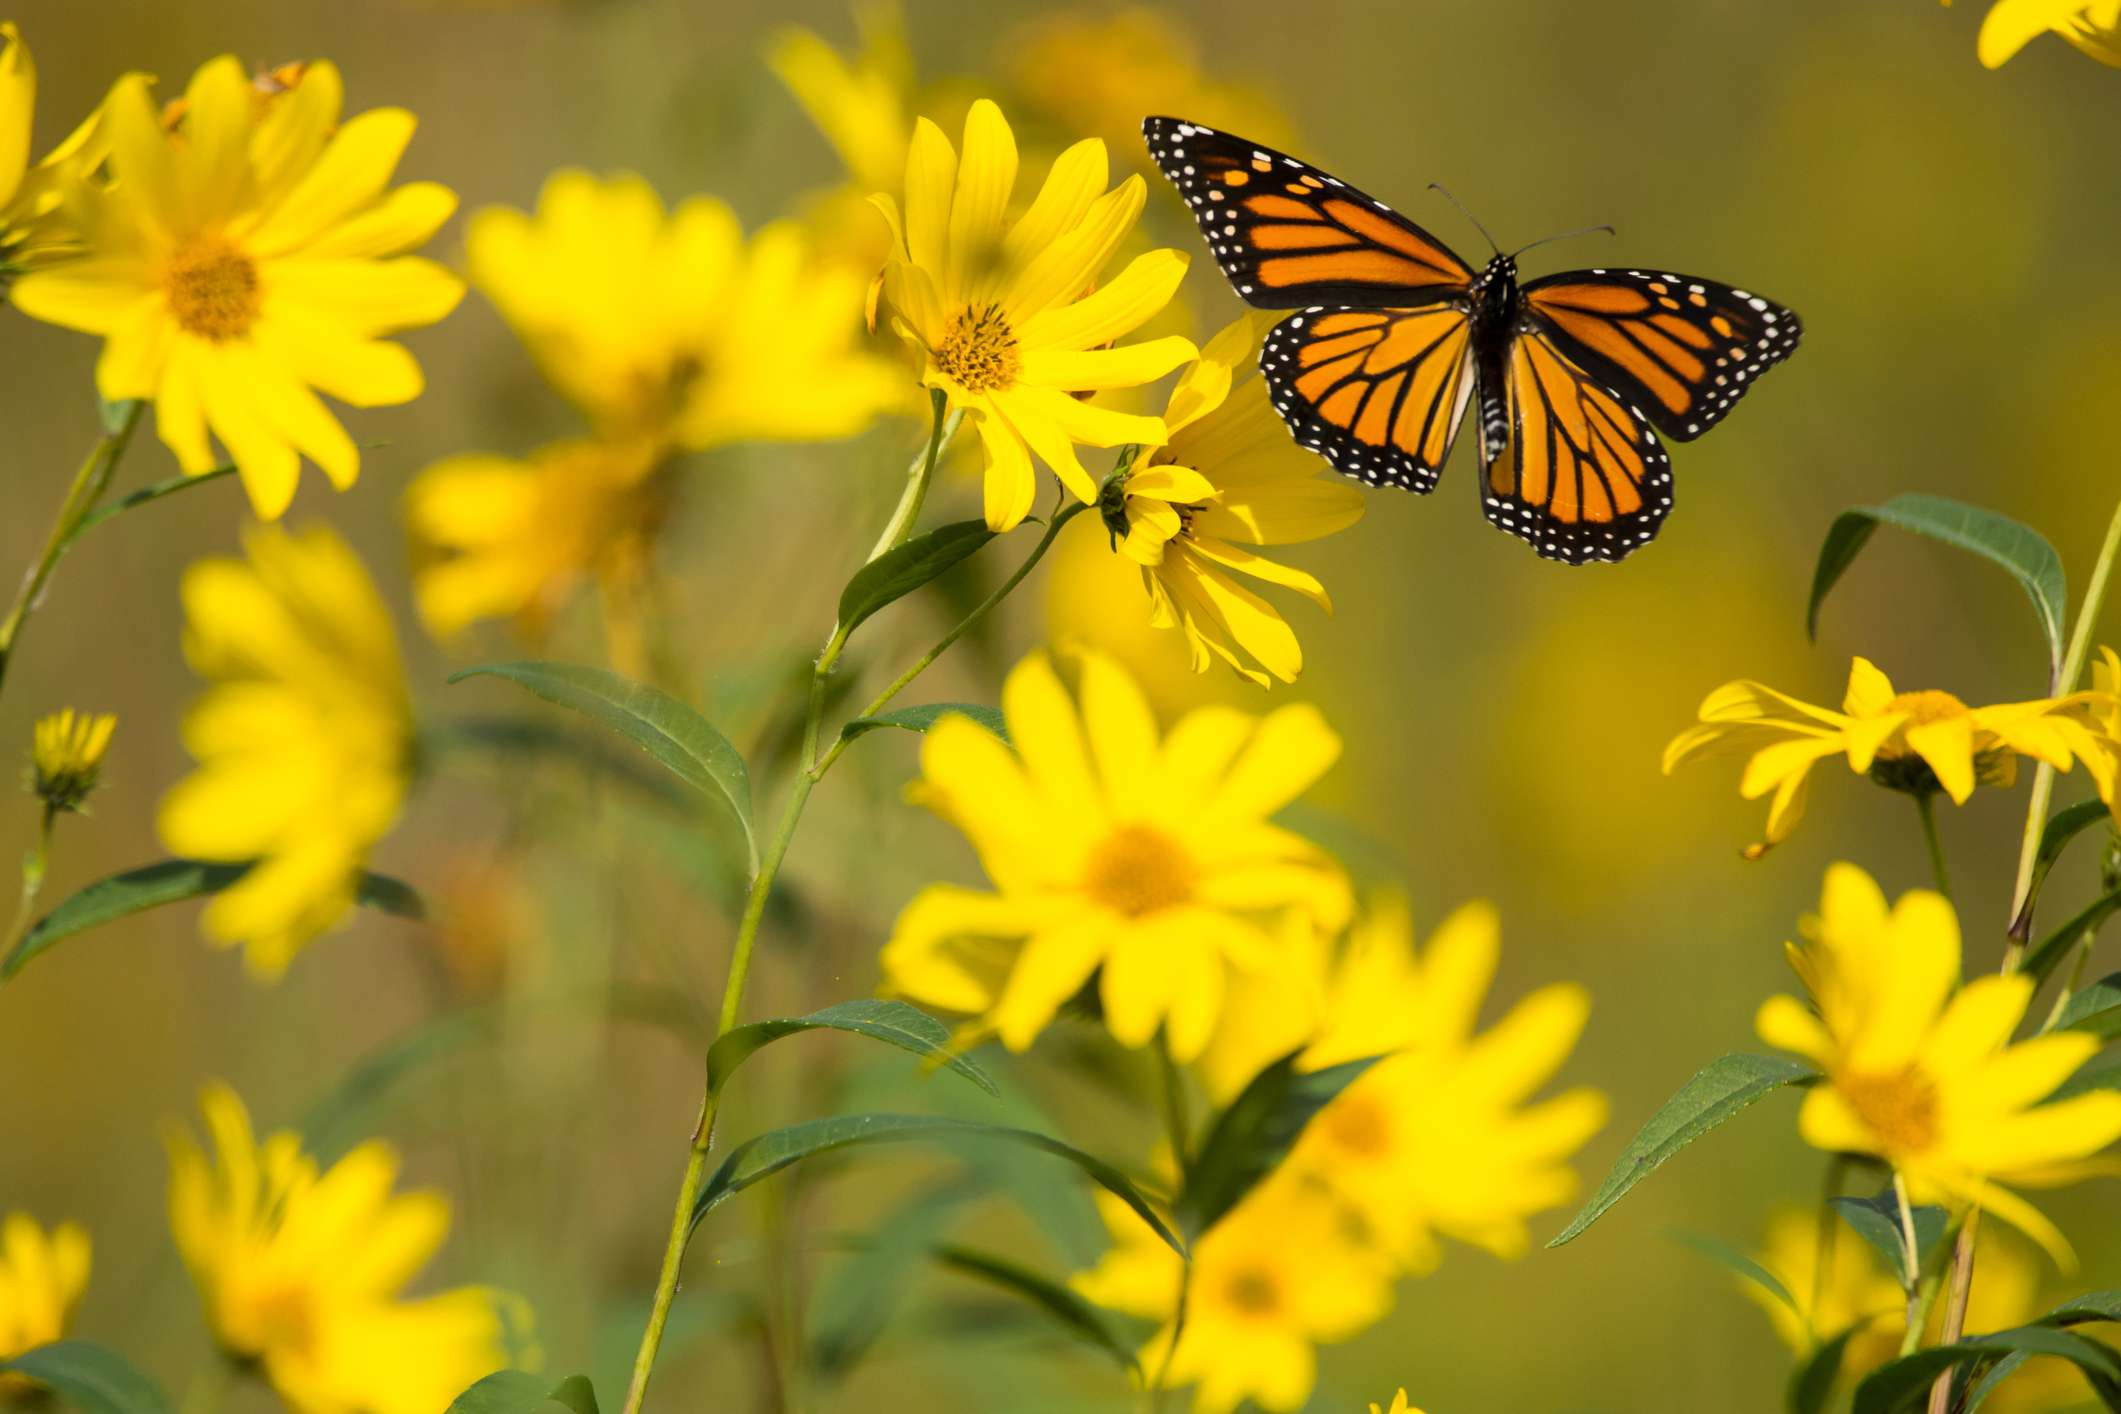 Compass plant with a monarch butterfly